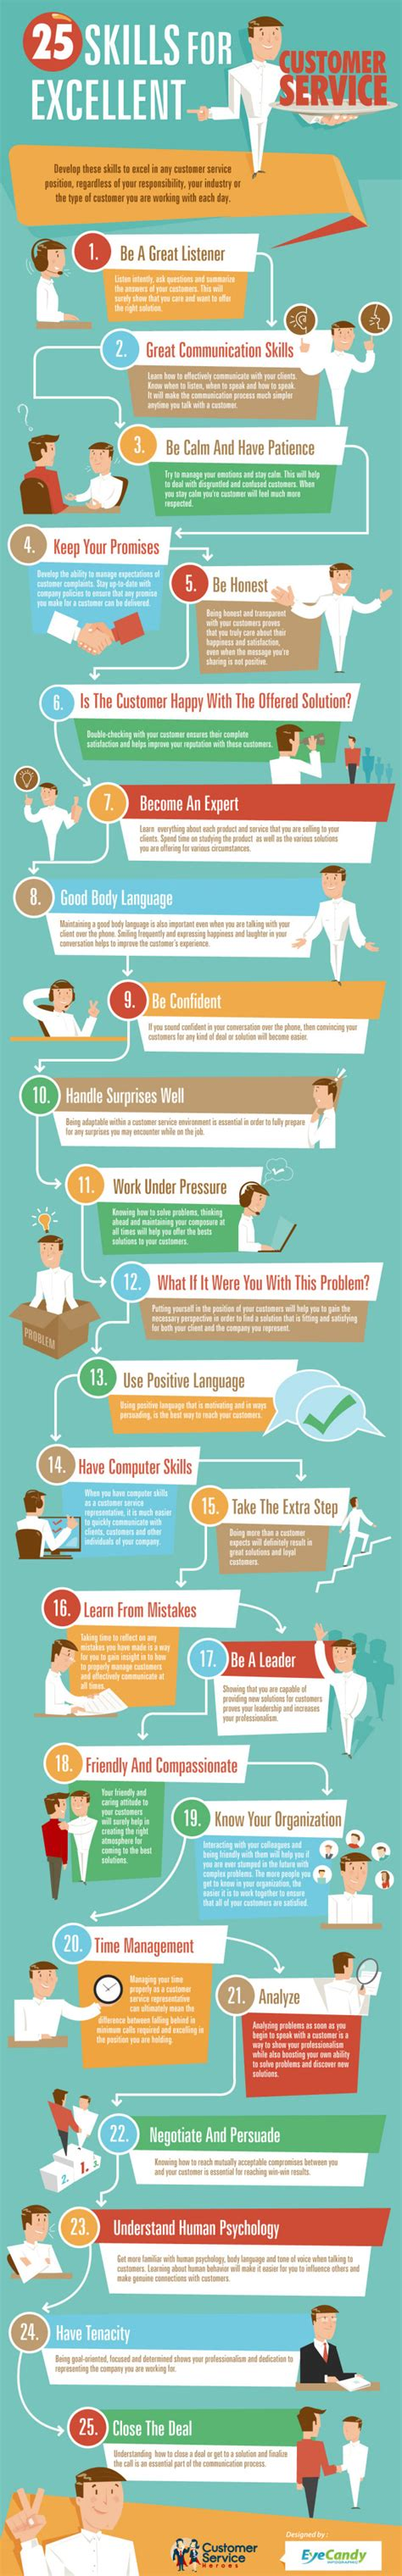 25 skills for excellent customer service infographic holy kaw